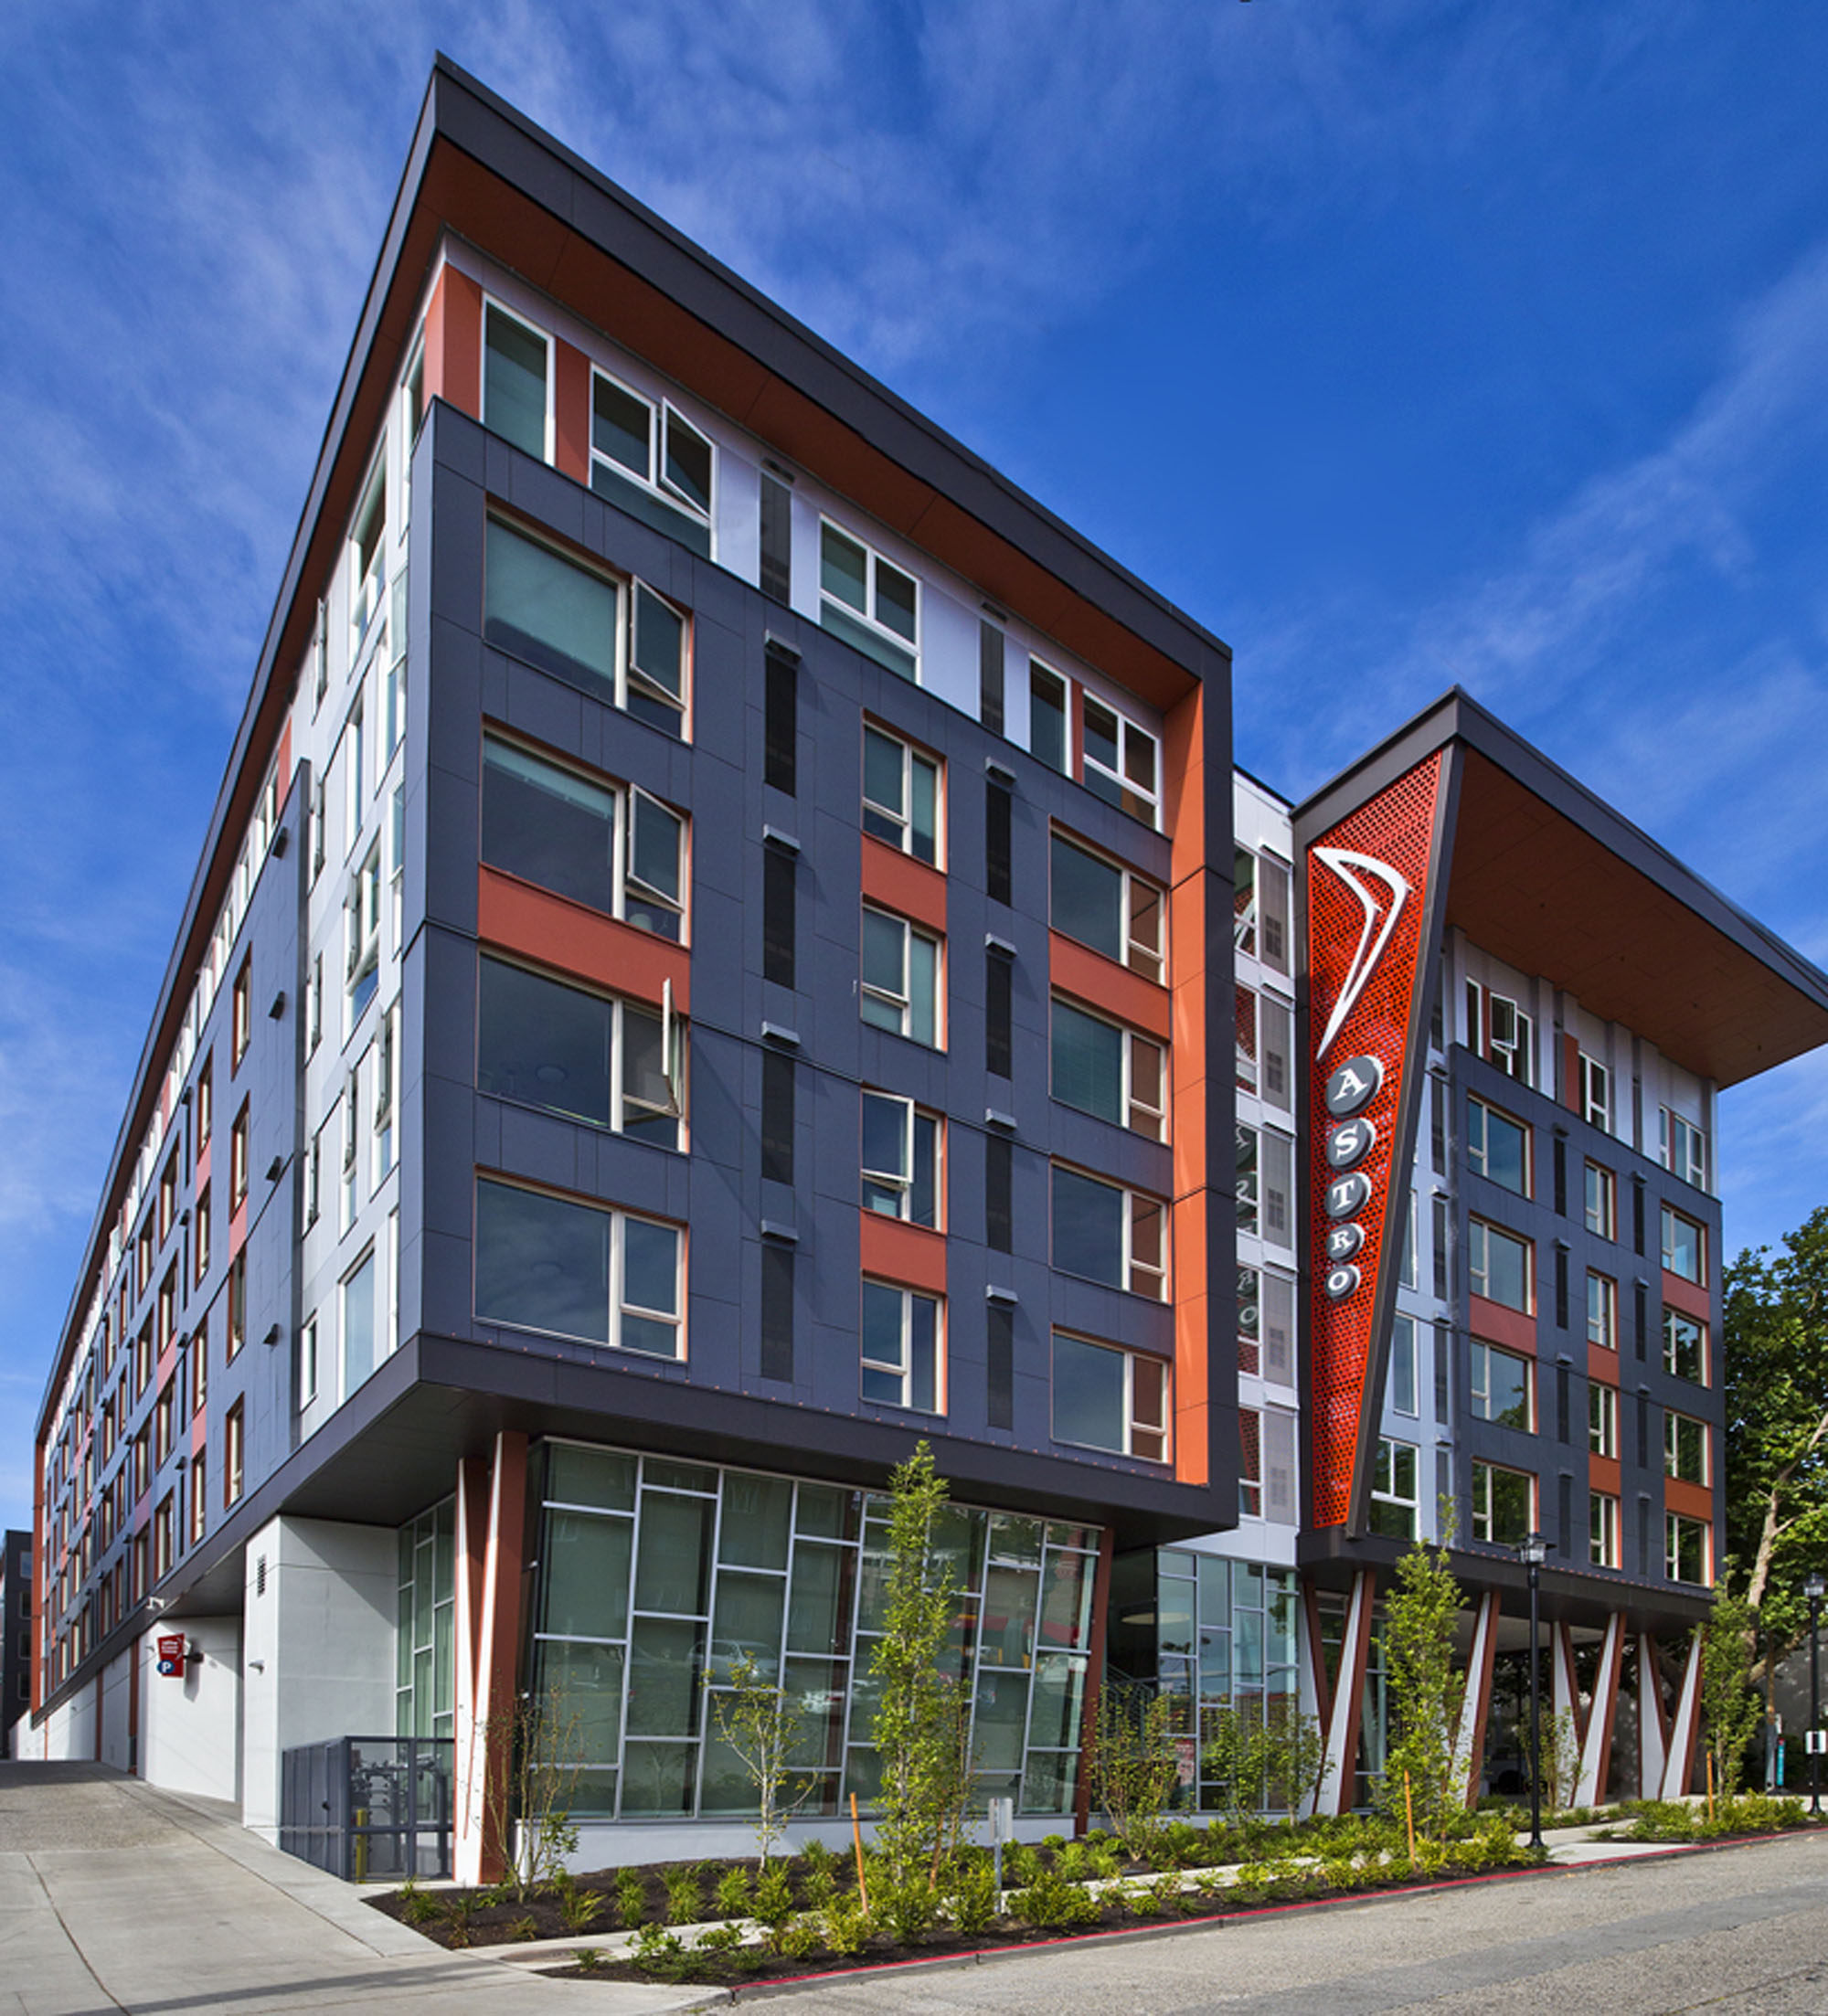 Etonnant Renovated Apartment Homes Available At Astro Apartments, Seattle, WA,98109